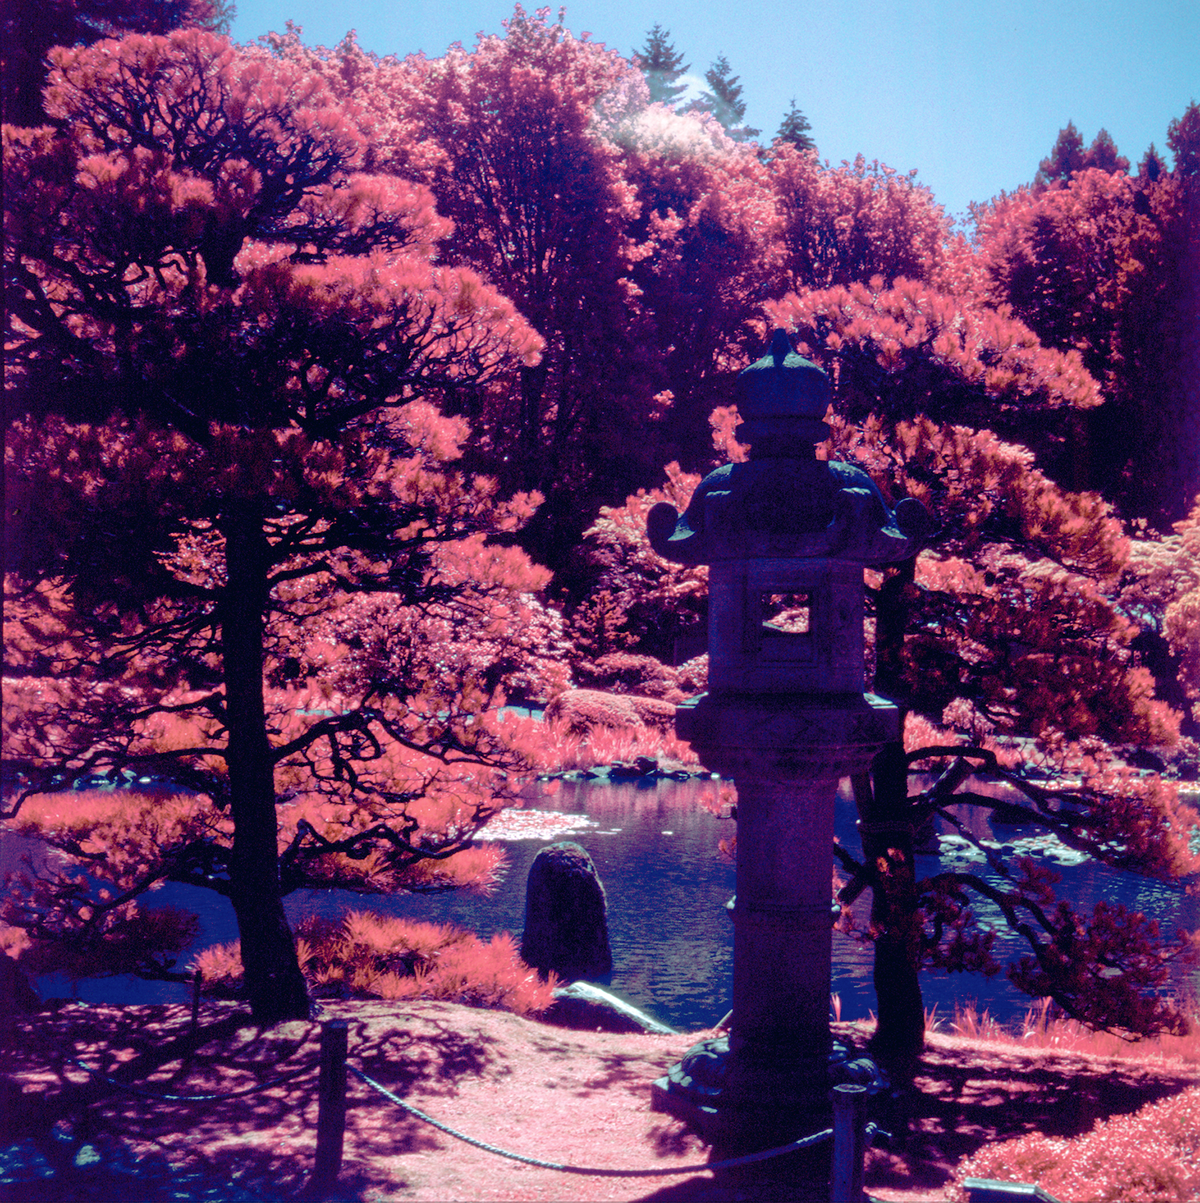 aerochrome infrared film in seattle on behance